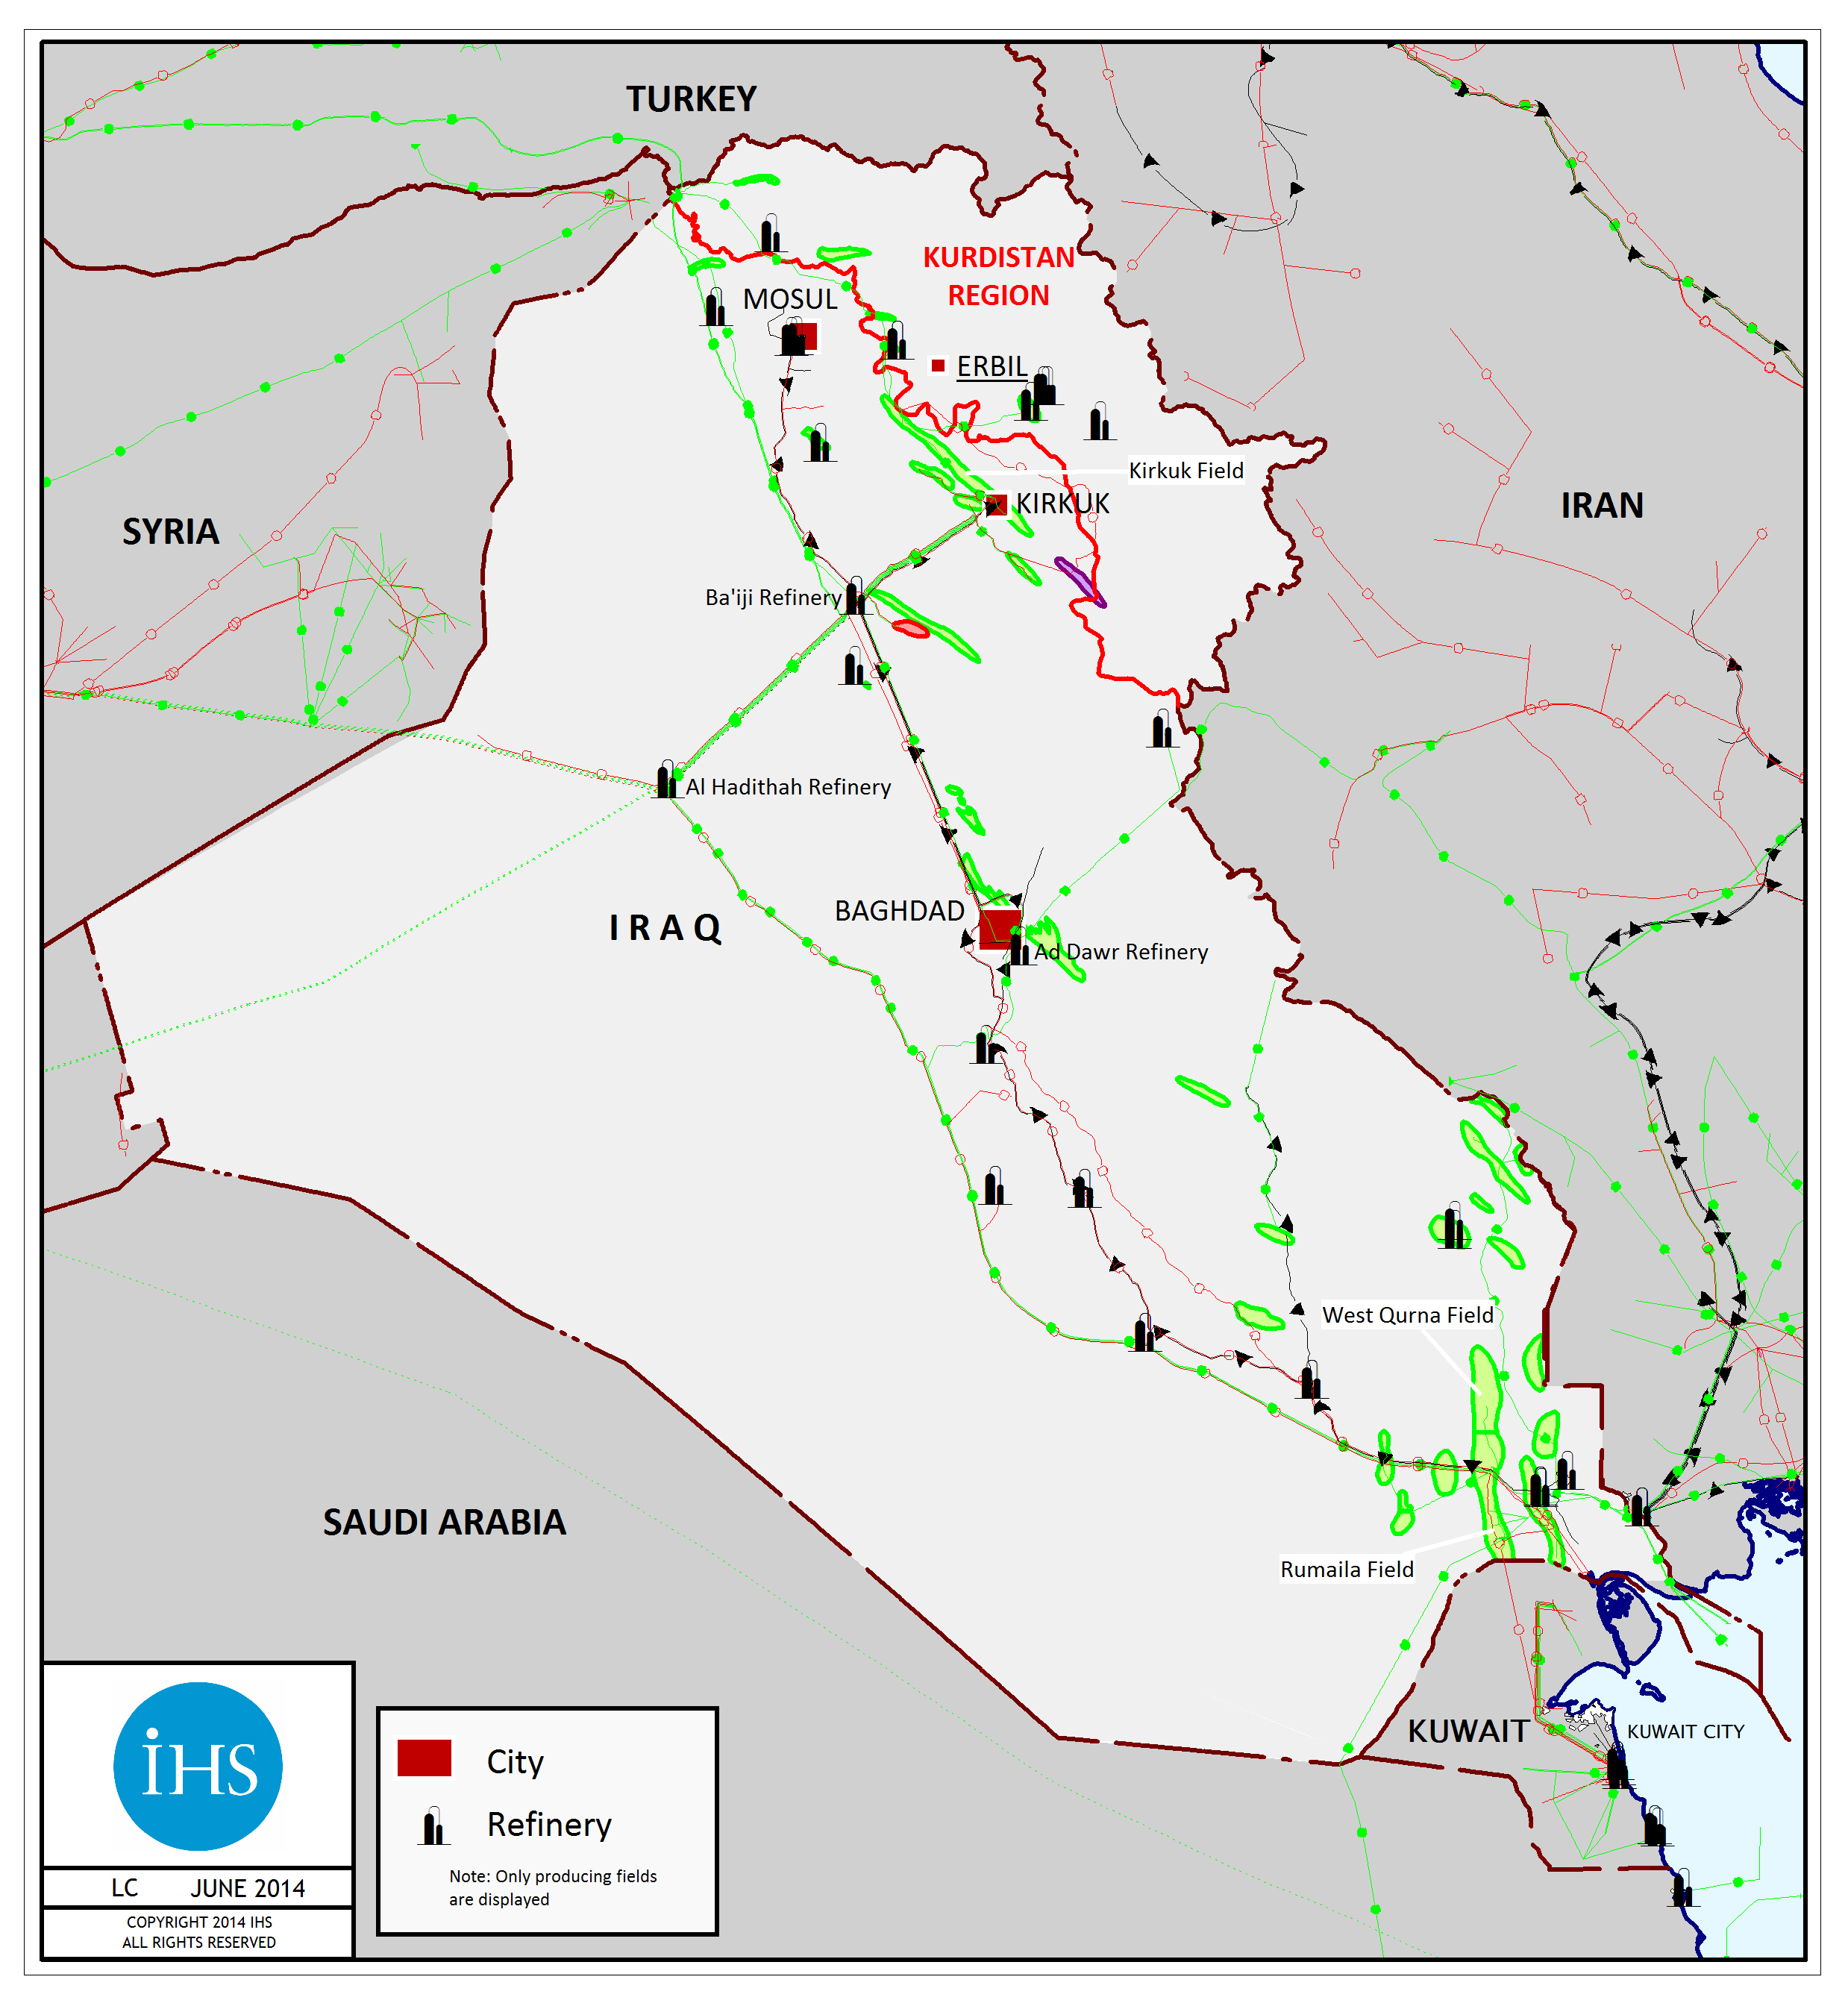 What were the effects of the discovery of oil in the Middle East?